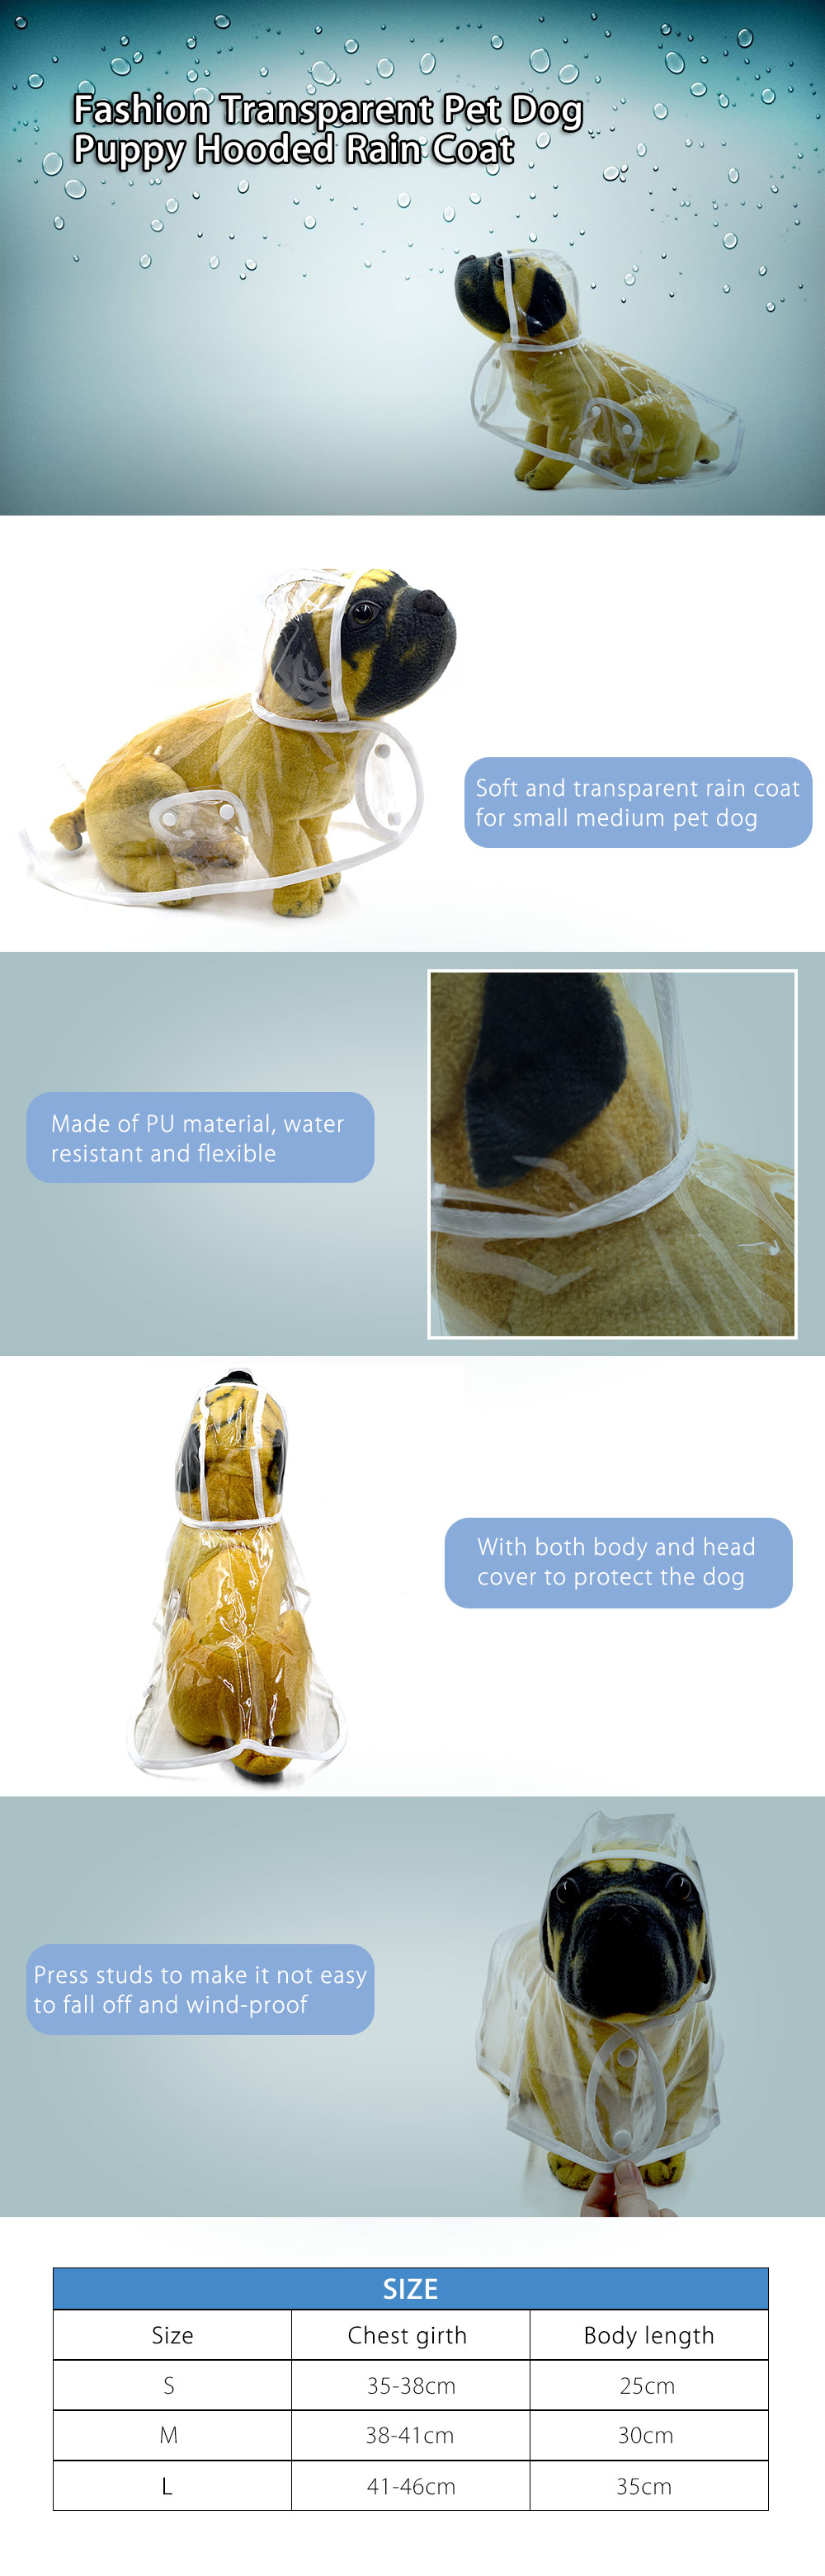 Fashion Transparent Pet Dog Puppy Hooded Rain Coat Rainwear